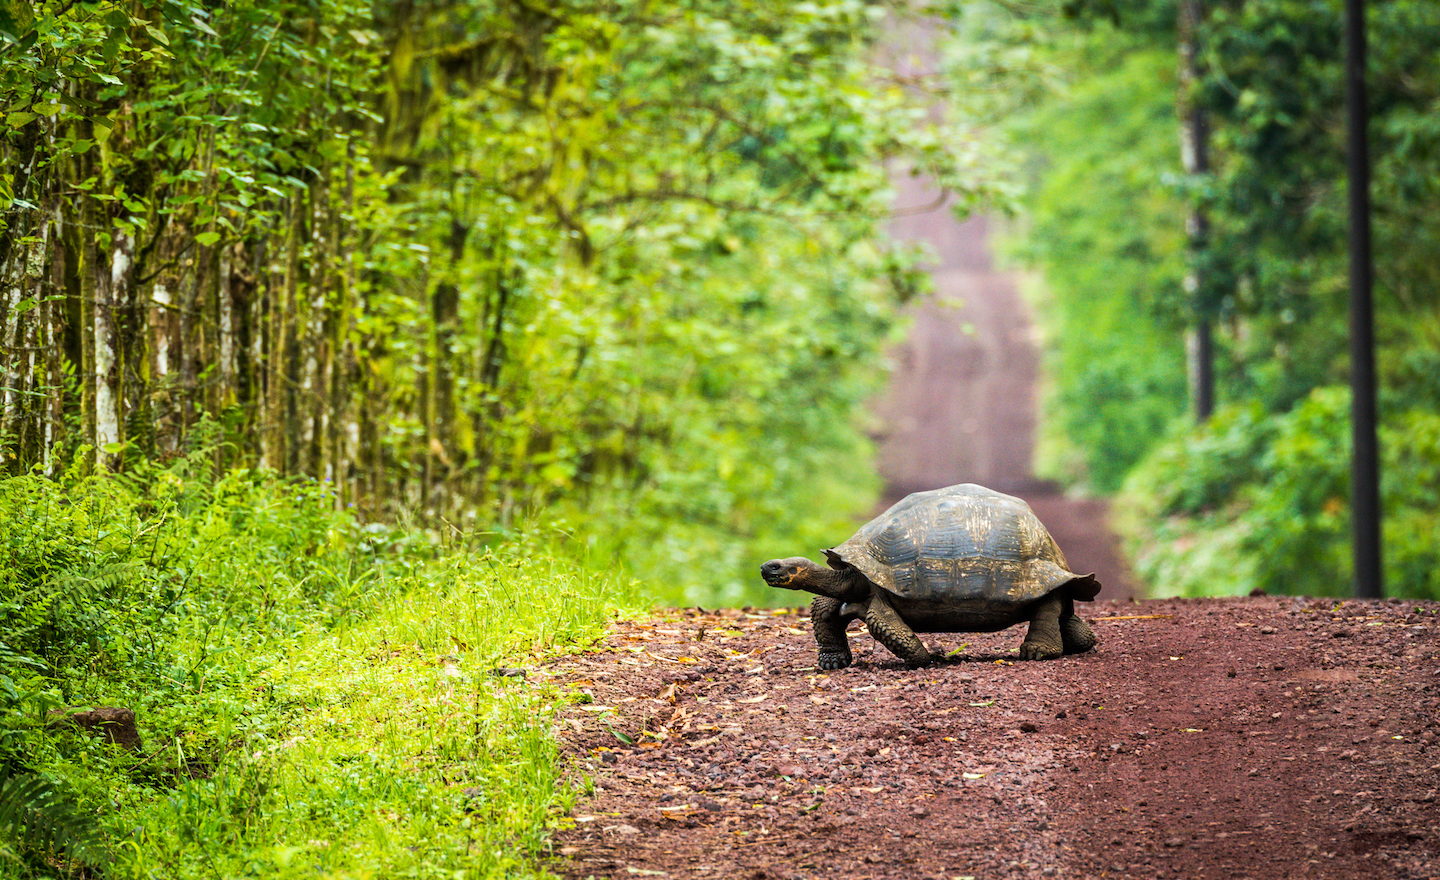 Galapagos giant tortoise crossing the road